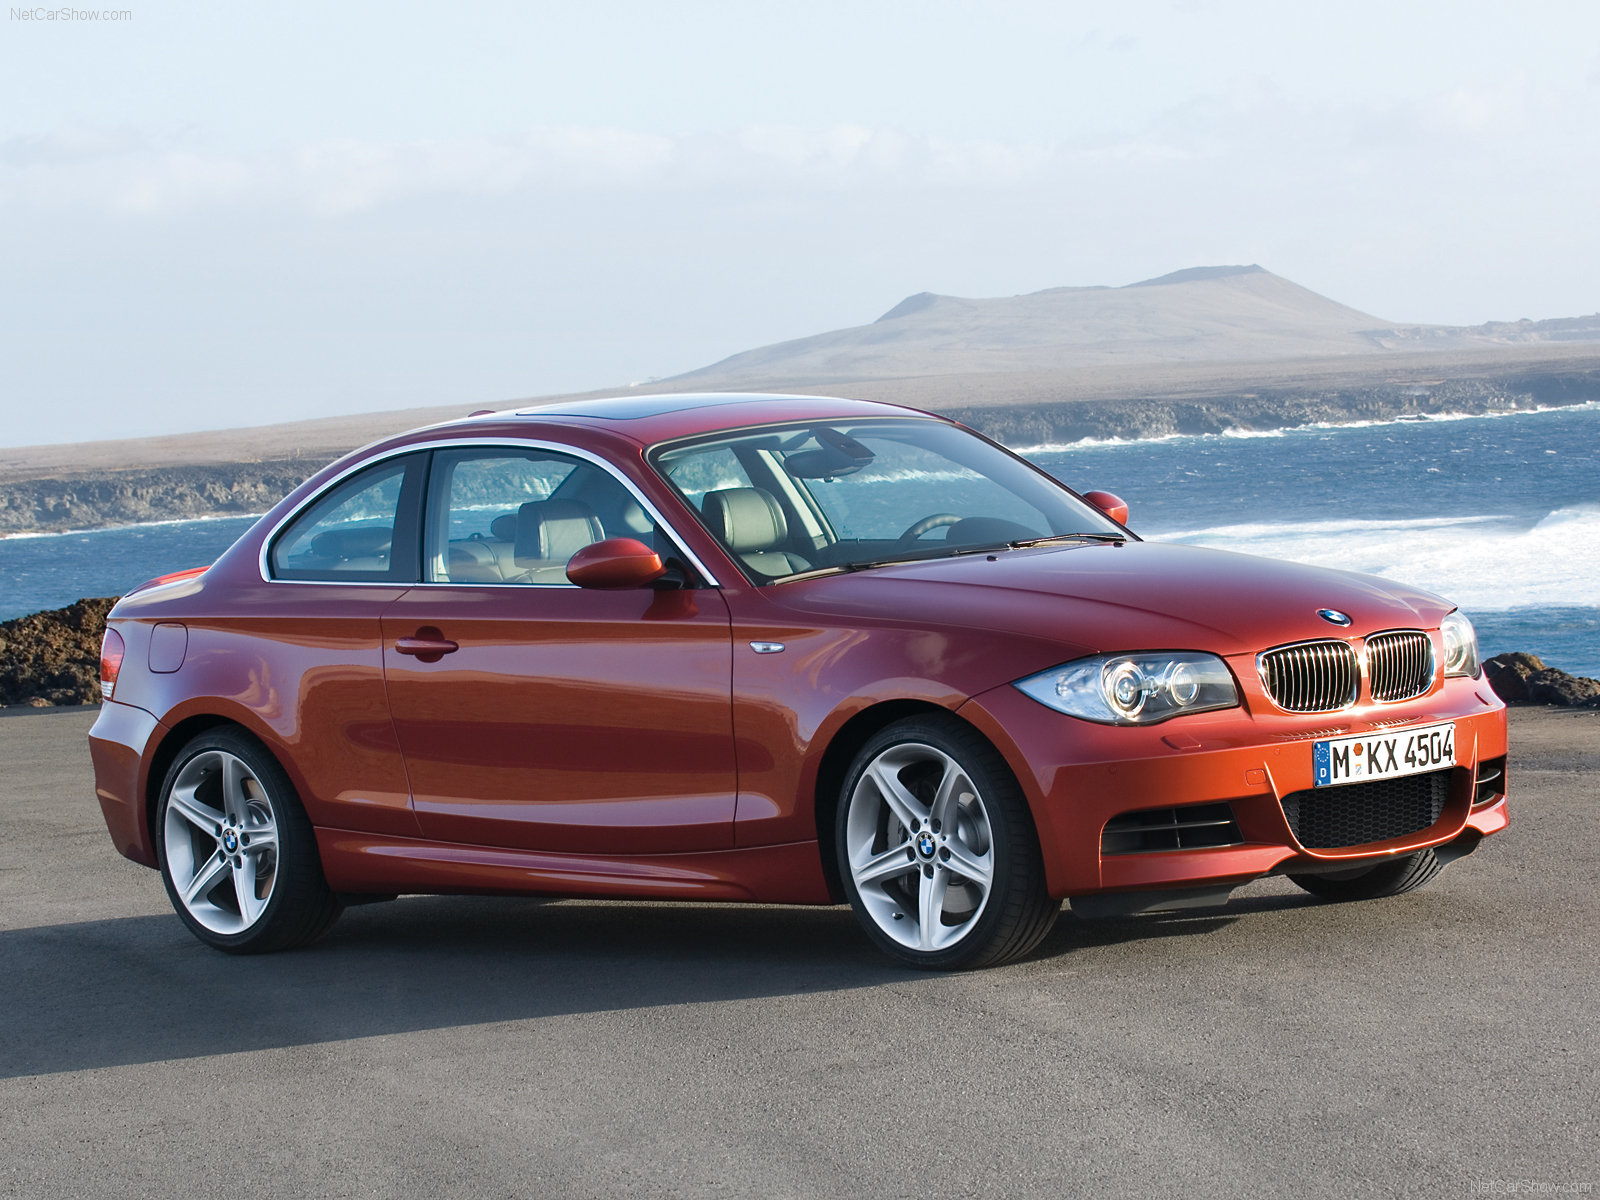 bmw 1 series coupe e82 photos photo gallery page 2. Black Bedroom Furniture Sets. Home Design Ideas